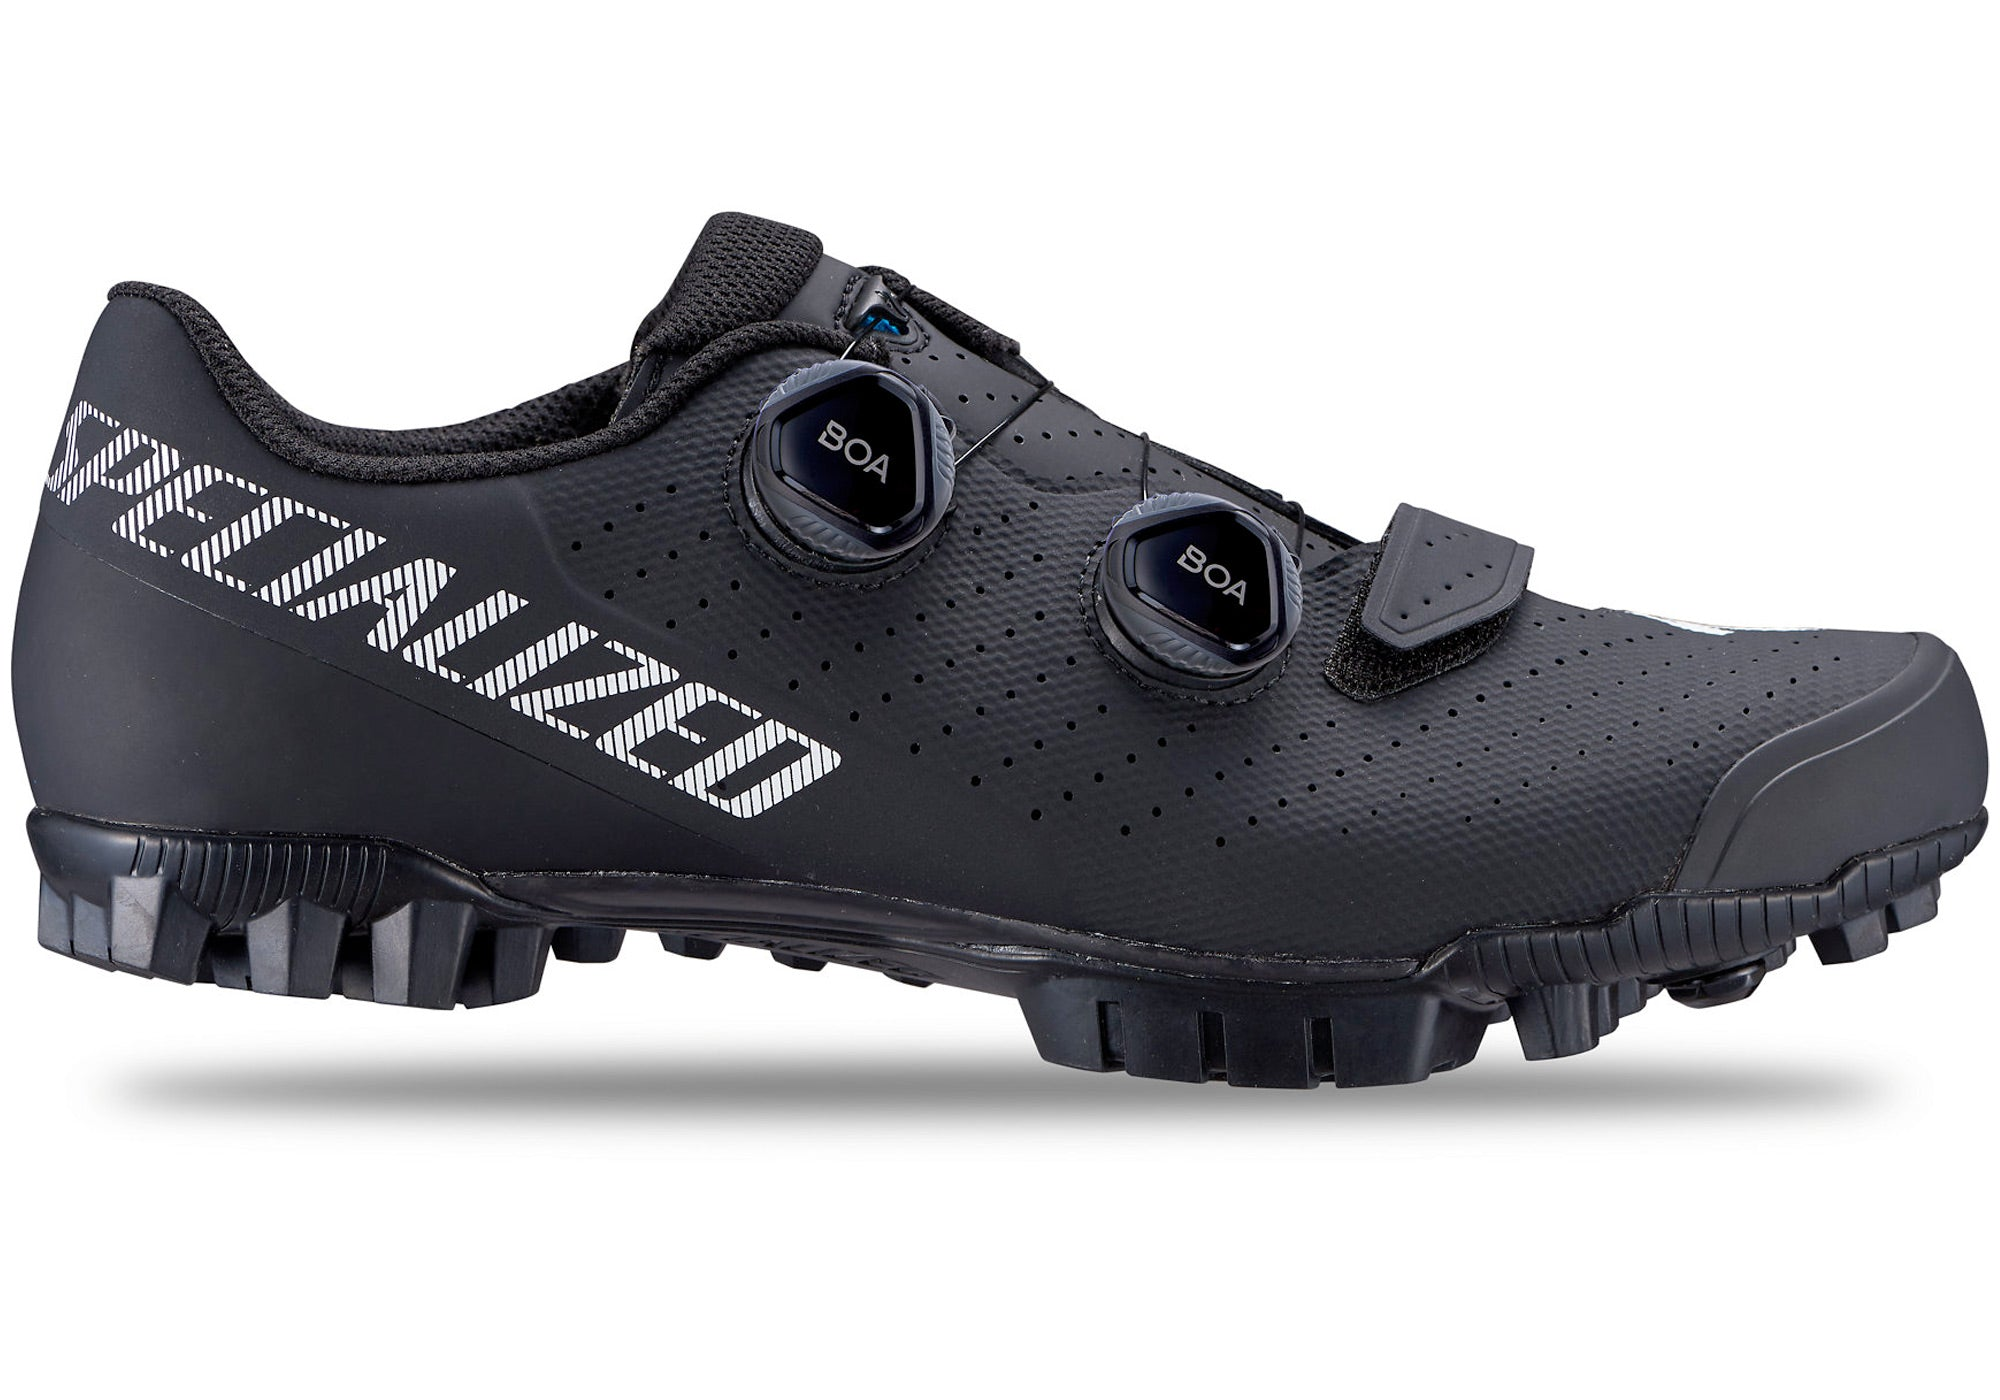 Specialized Recon 3.0 Mens MTB Shoes, Black